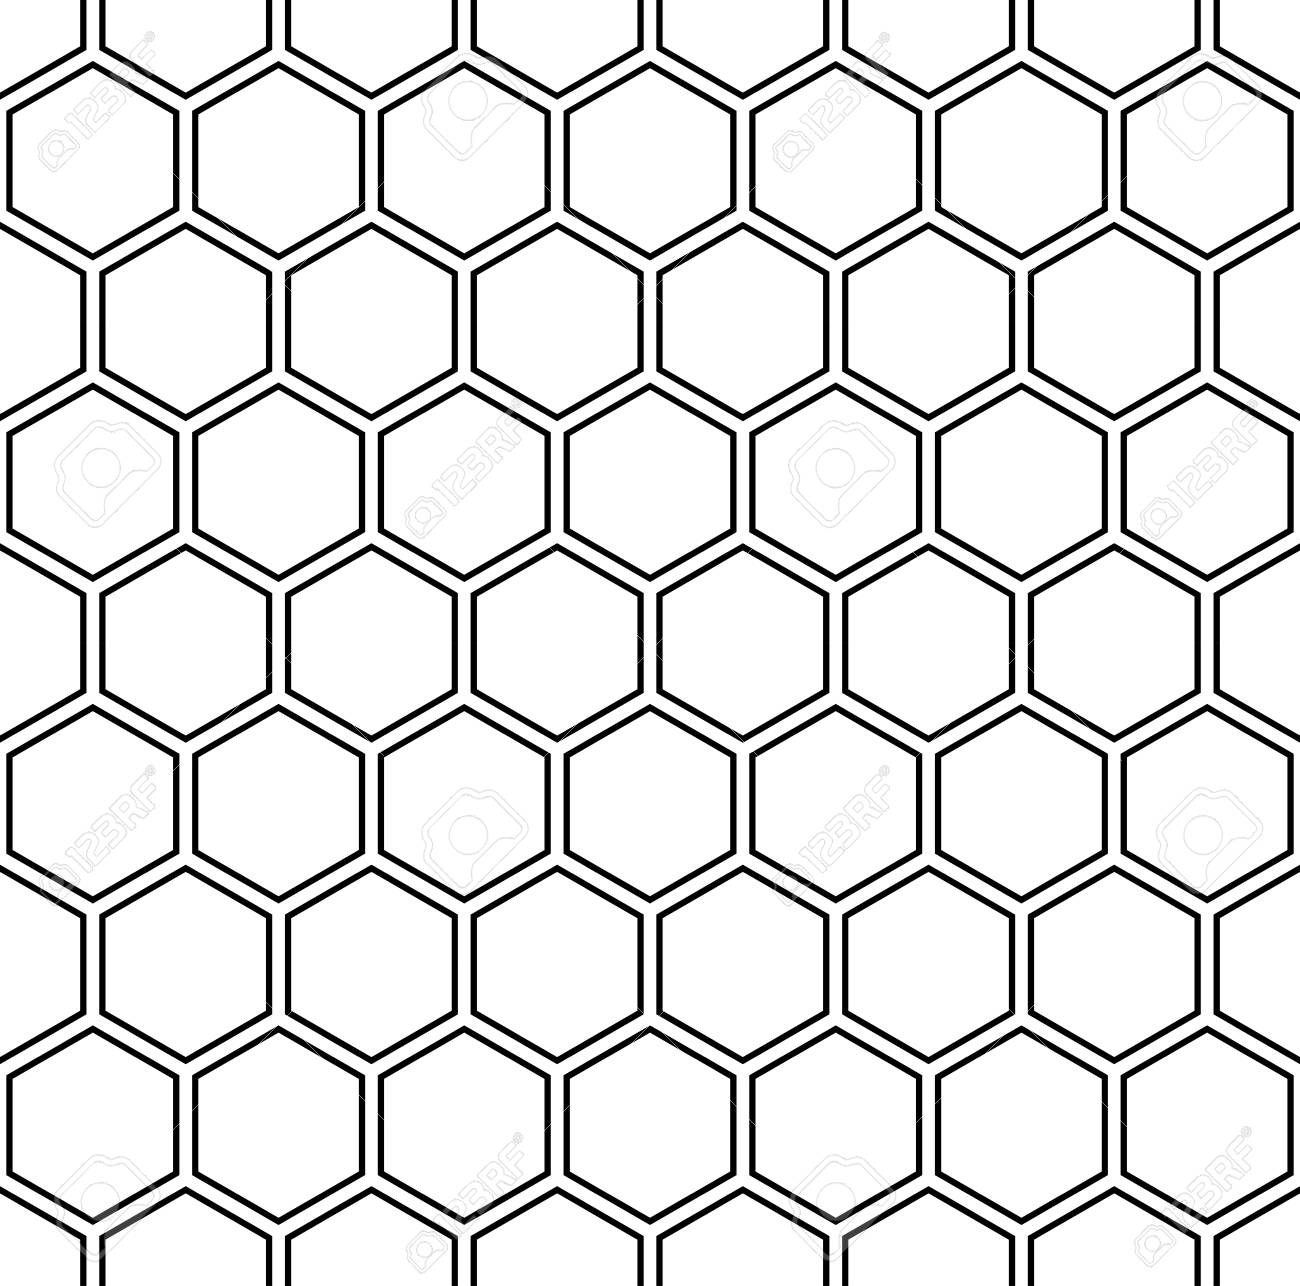 Vector modern seamless geometry pattern hexagon, black and white honeycomb abstract geometric background, subtle pillow print, monochrome retro texture, hipster fashion design - 54907010